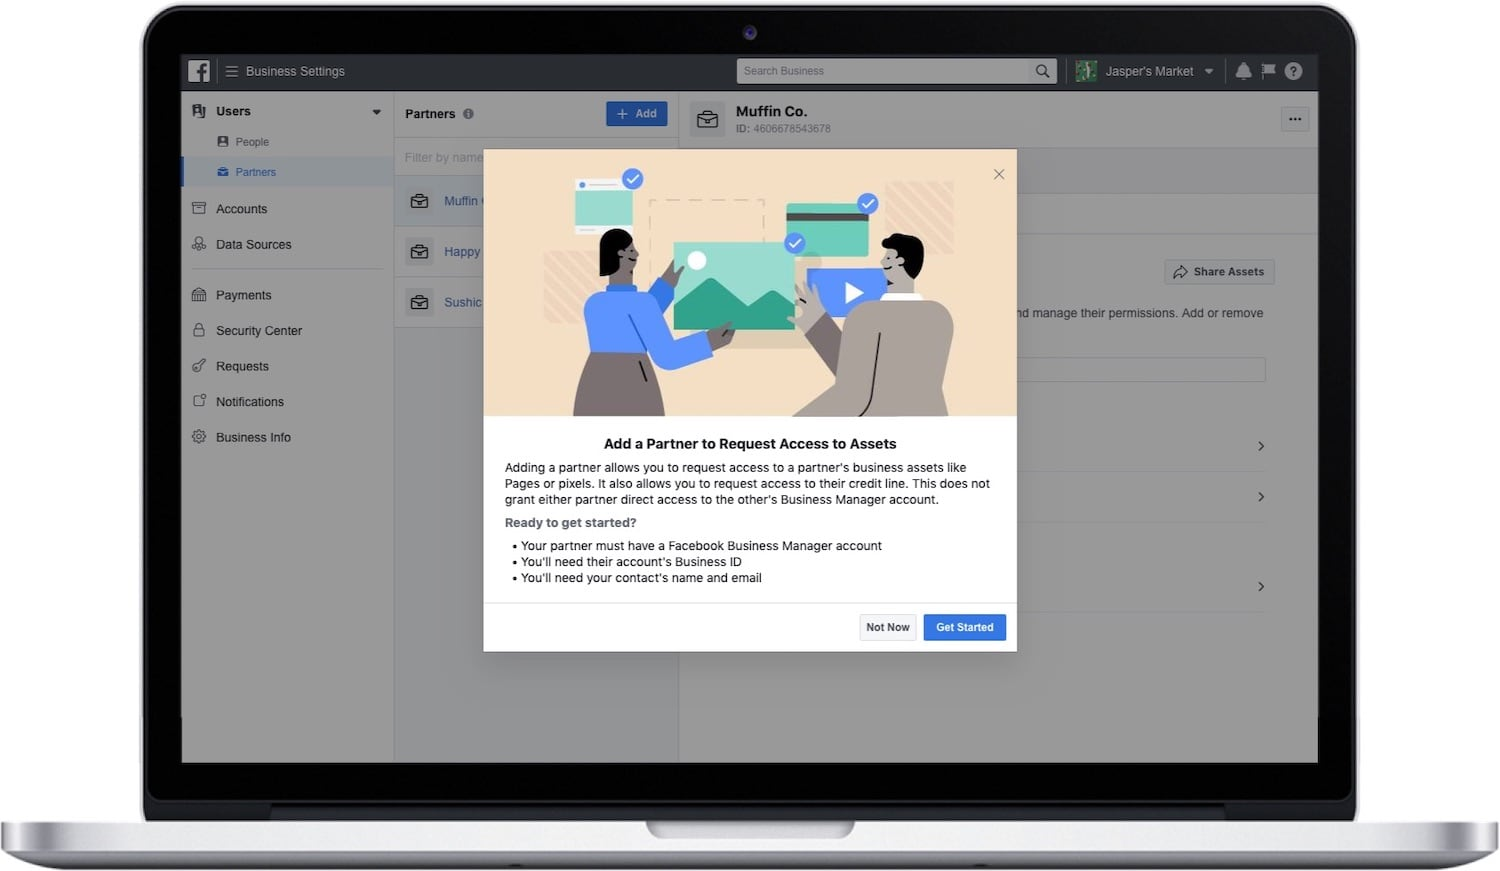 Facebook Updates Business Manager With Improved Design & Navigation